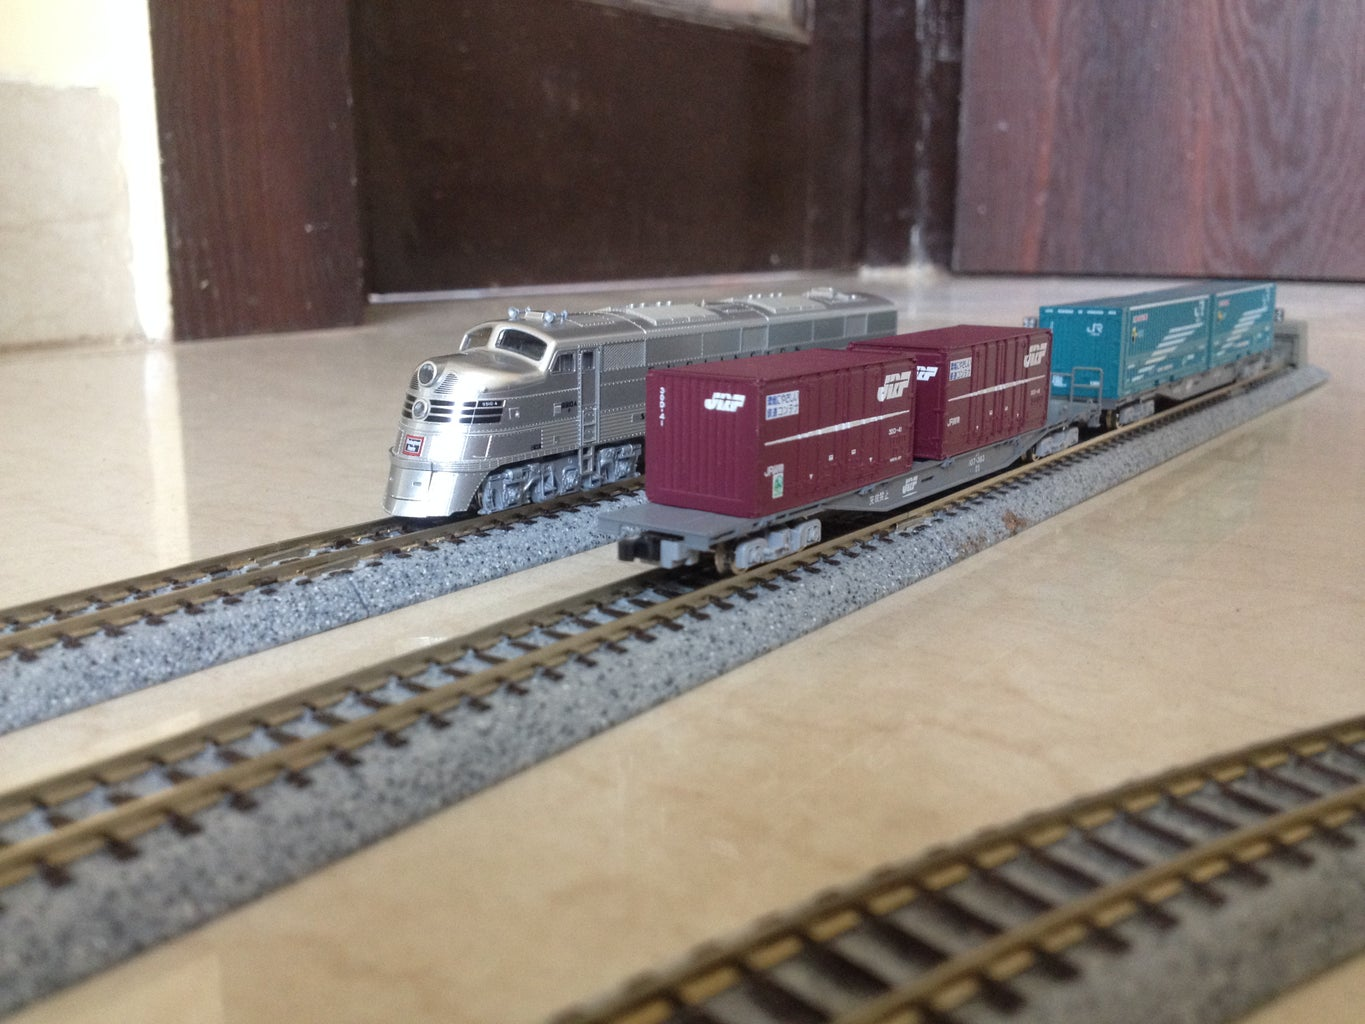 Place the Locomotive and Some Rolling Stock on the Tracks